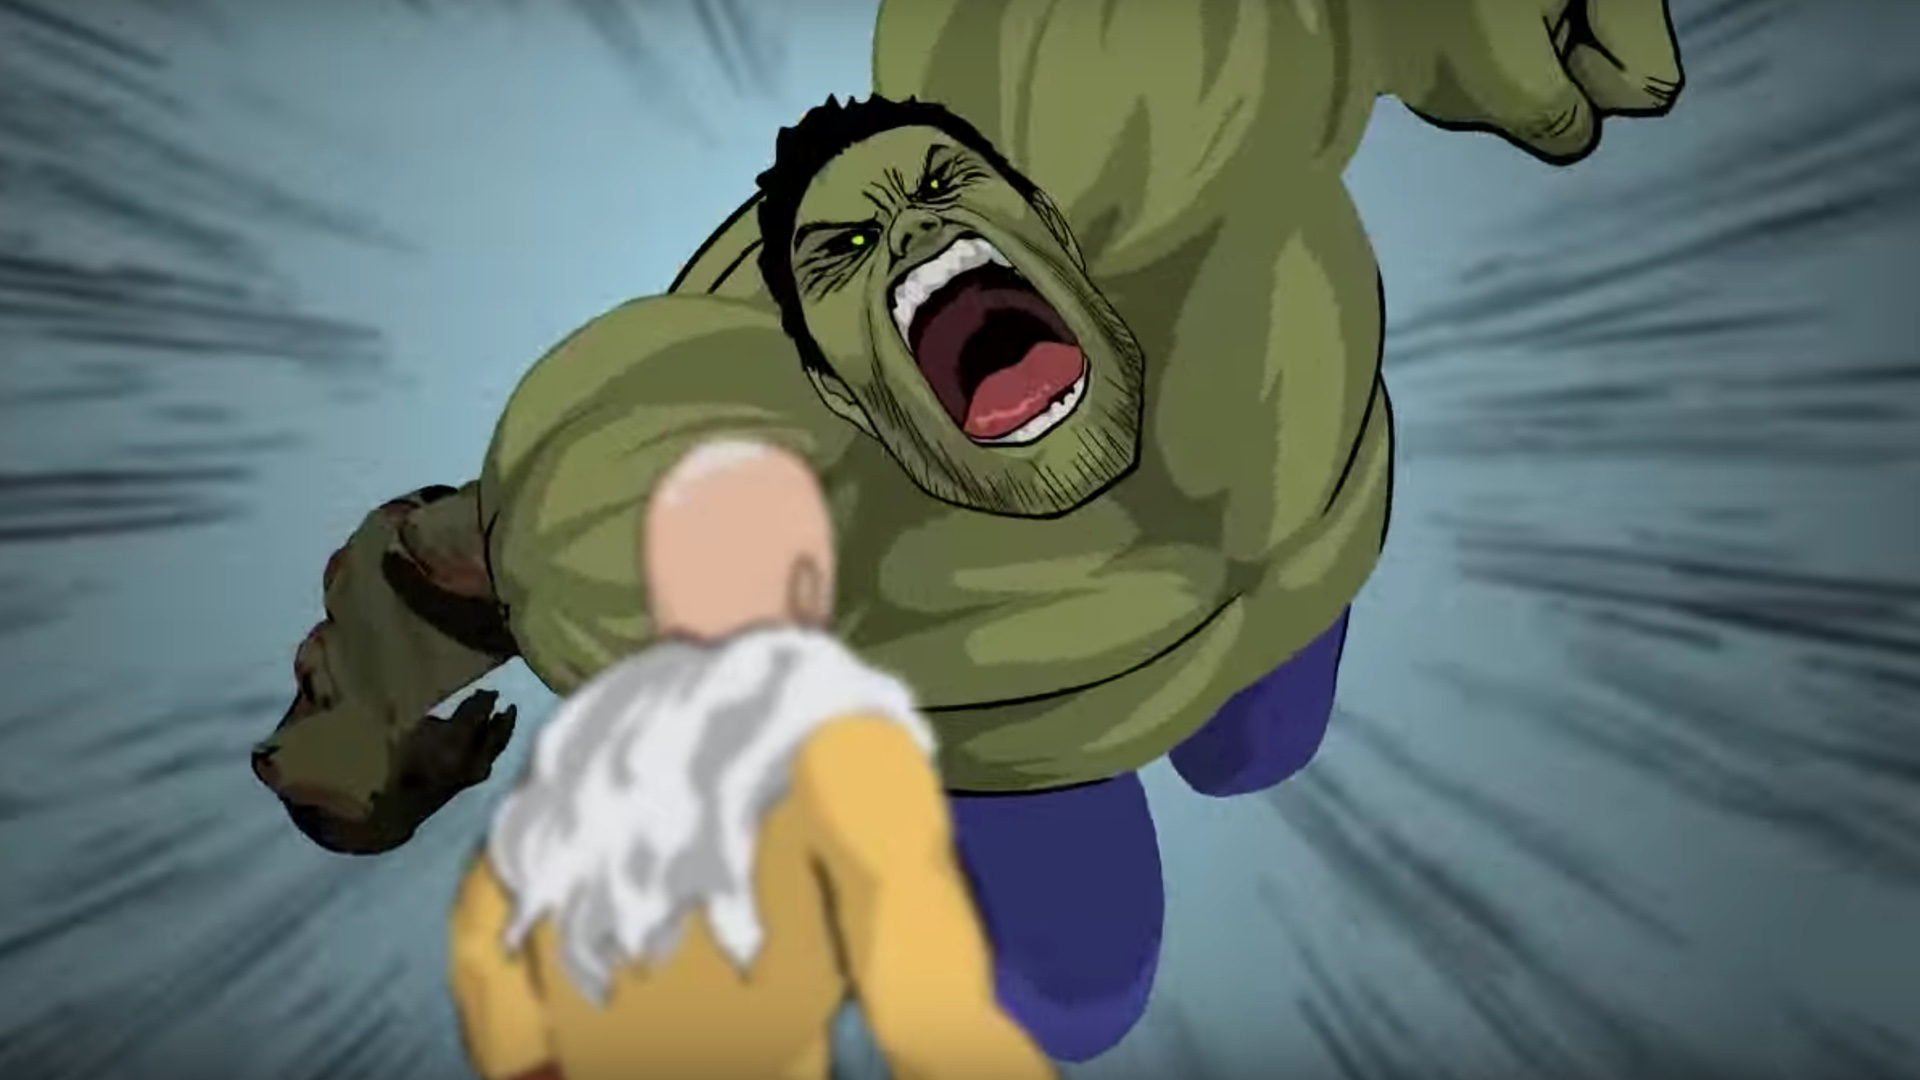 the hulk vs one punch man in this action packed fan made animated